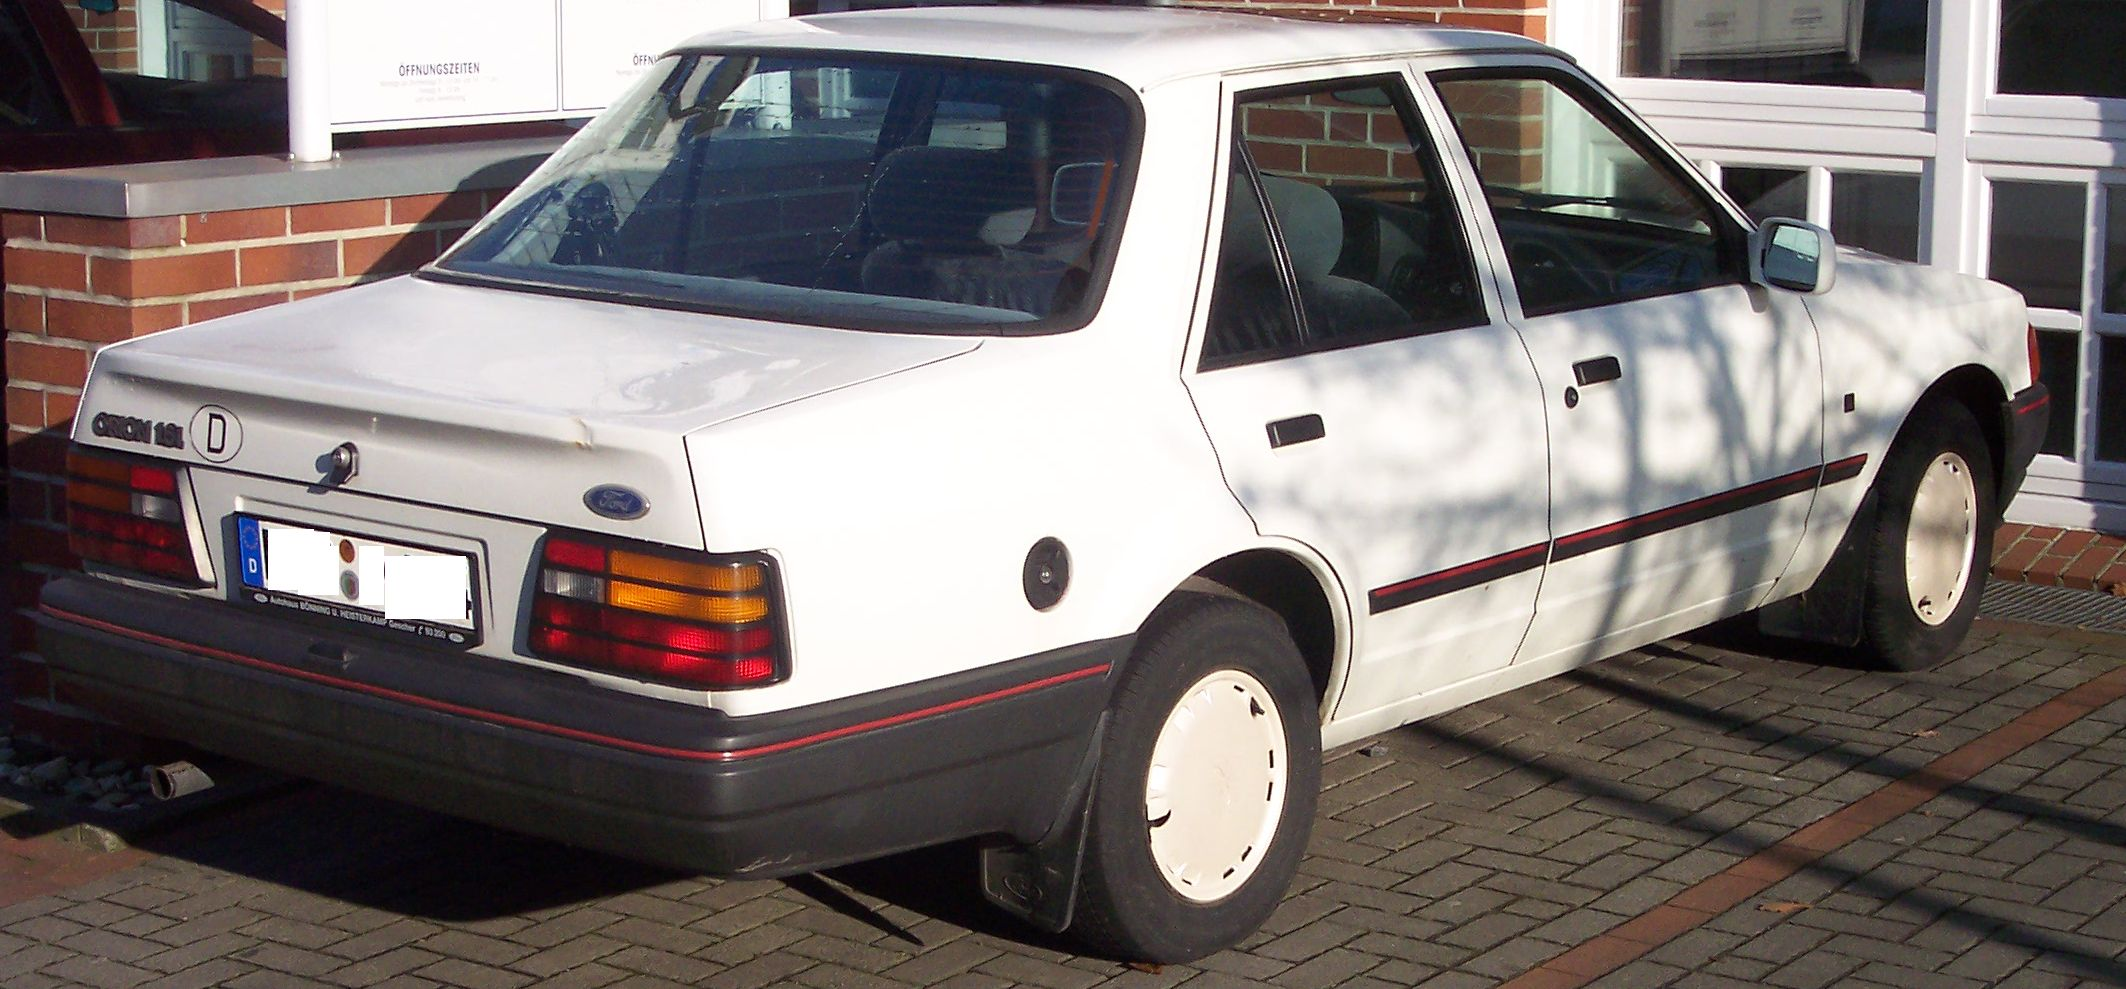 Ford Orion #17